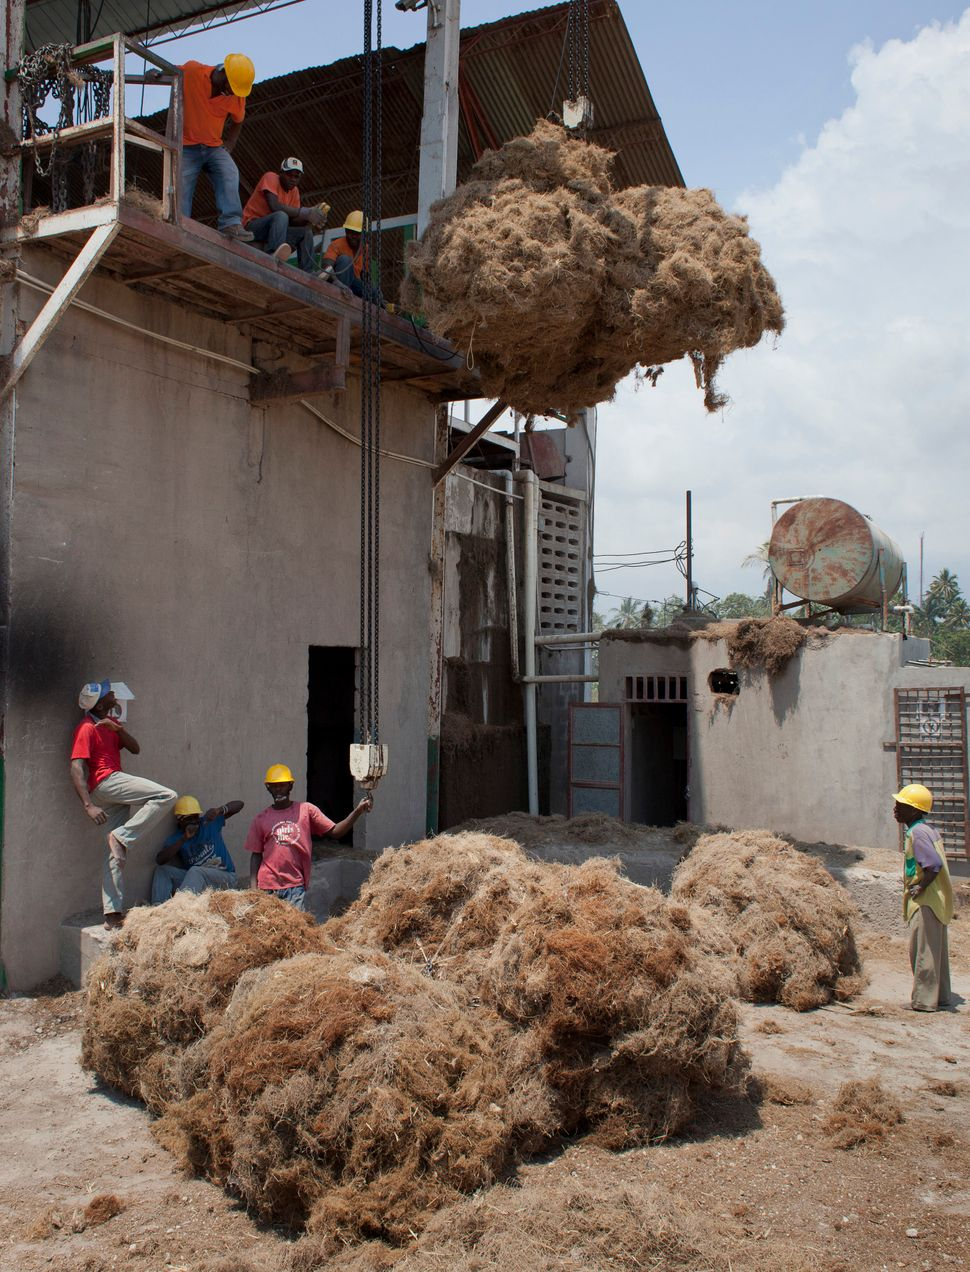 Workers move bales of Vetiver roots to be processed at the Agri-supply distillery on Haiti's southwest coast on March 27, 201